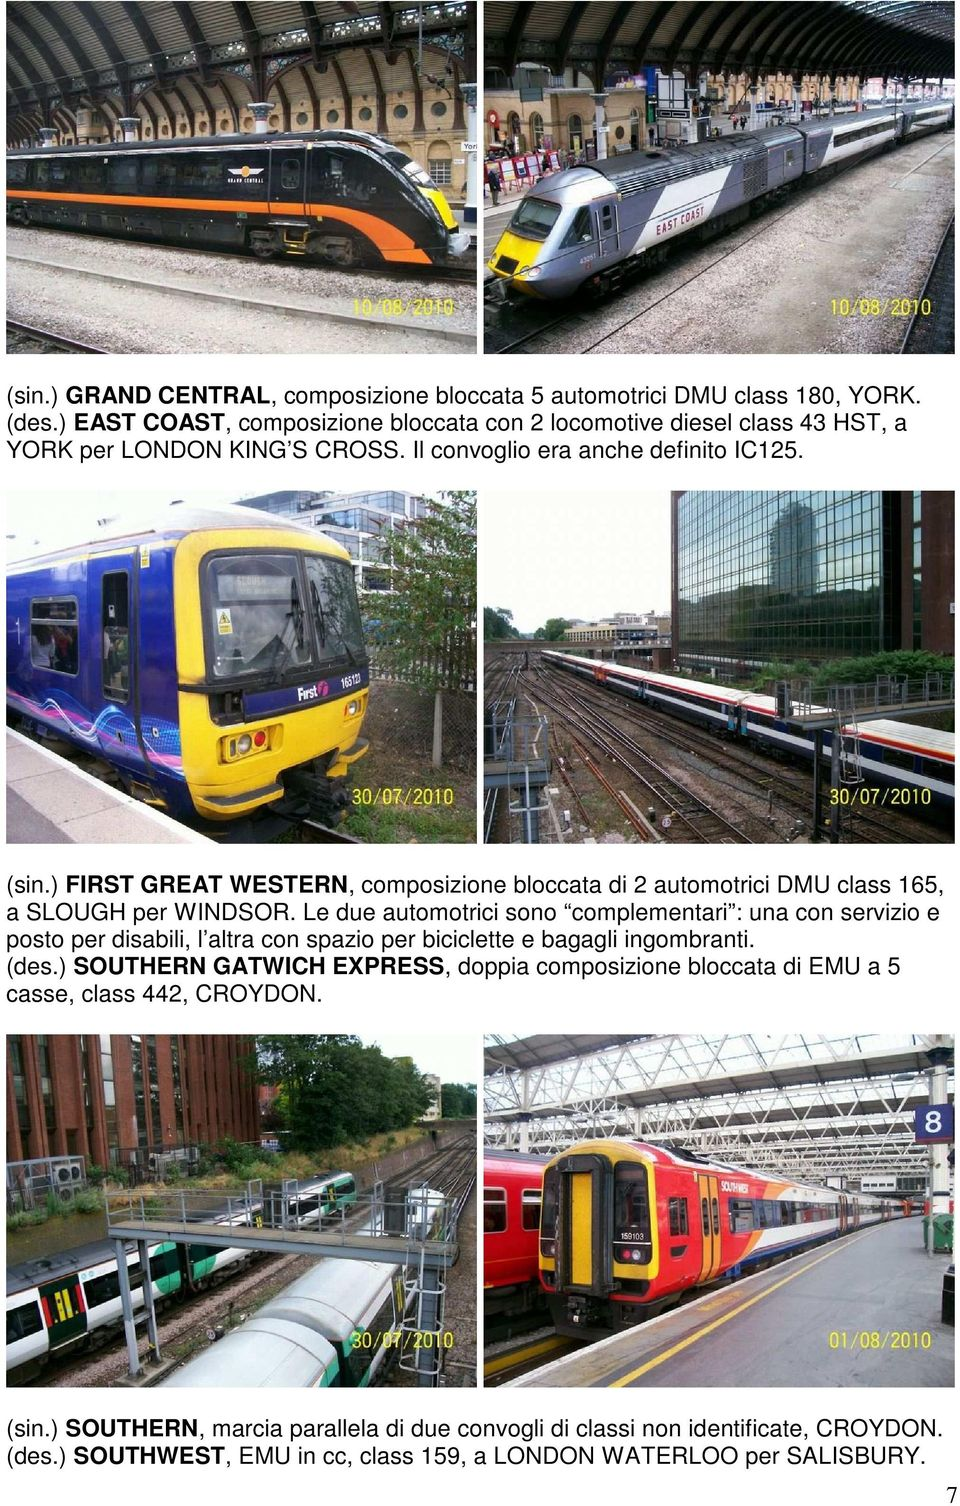 ) FIRST GREAT WESTERN, composizione bloccata di 2 automotrici DMU class 165, a SLOUGH per WINDSOR.